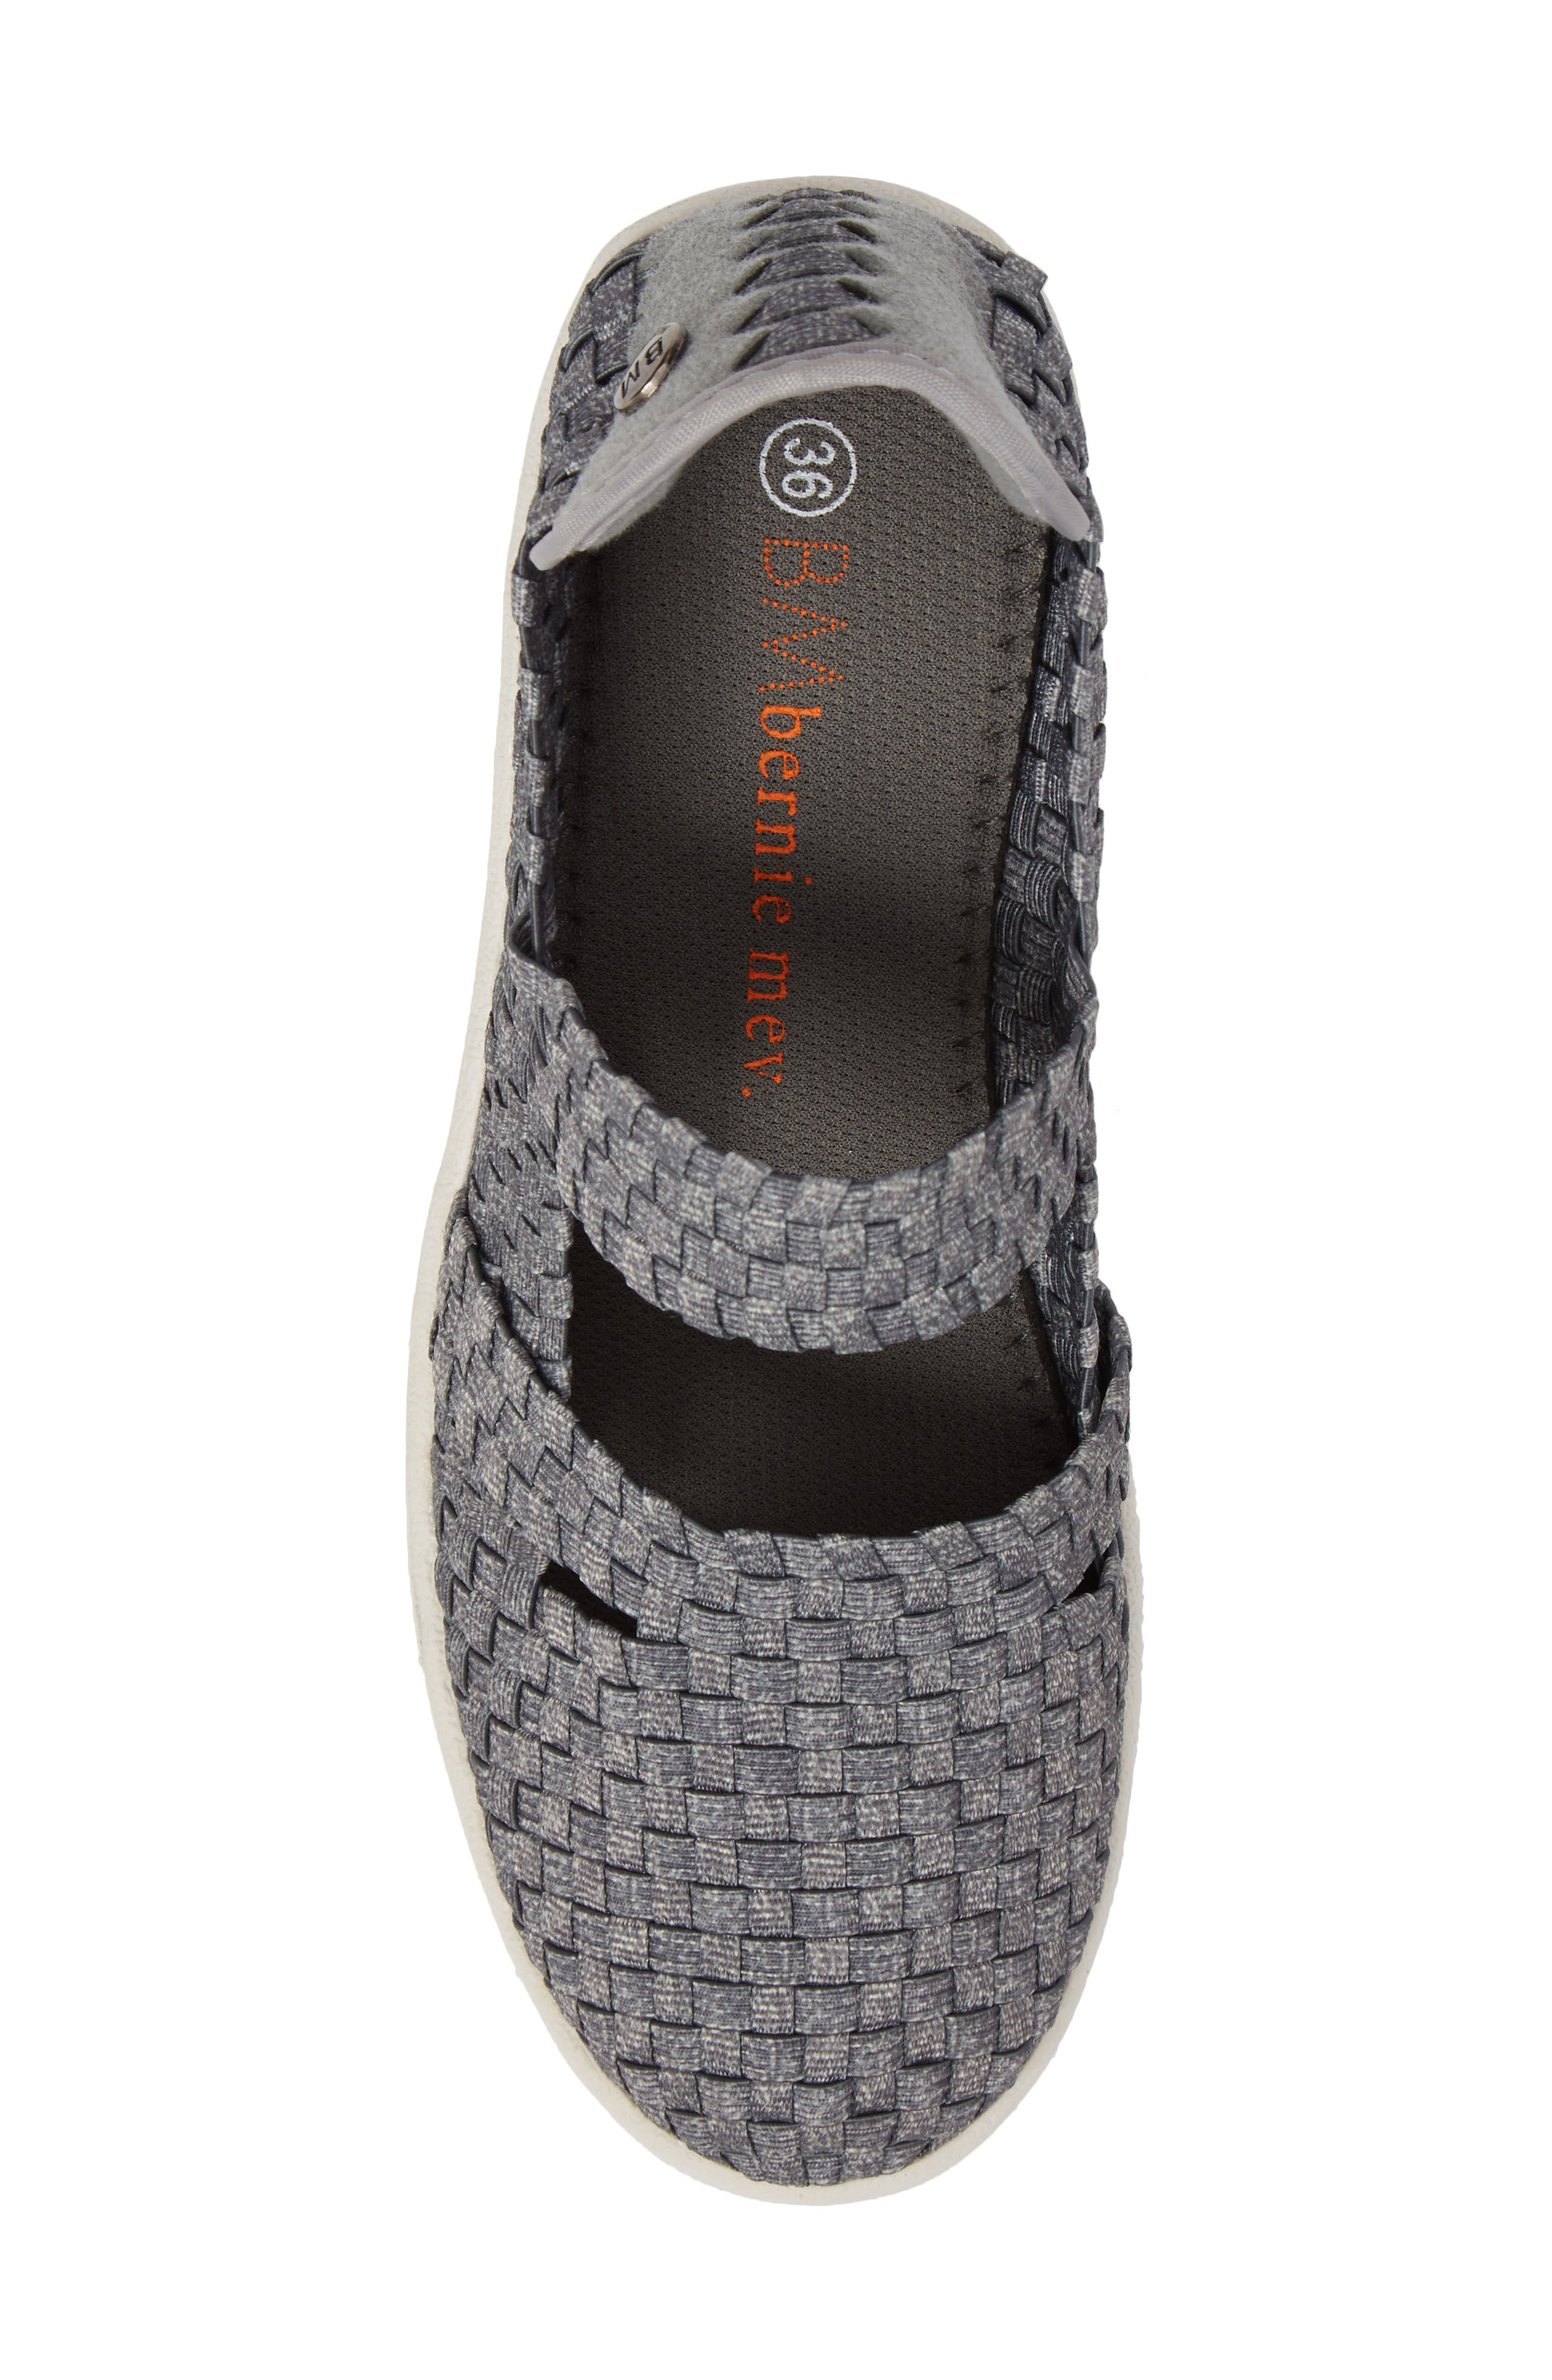 Frontier Woven Mary Jane Wedge,                             Alternate thumbnail 5, color,                             HEATHER GREY FABRIC